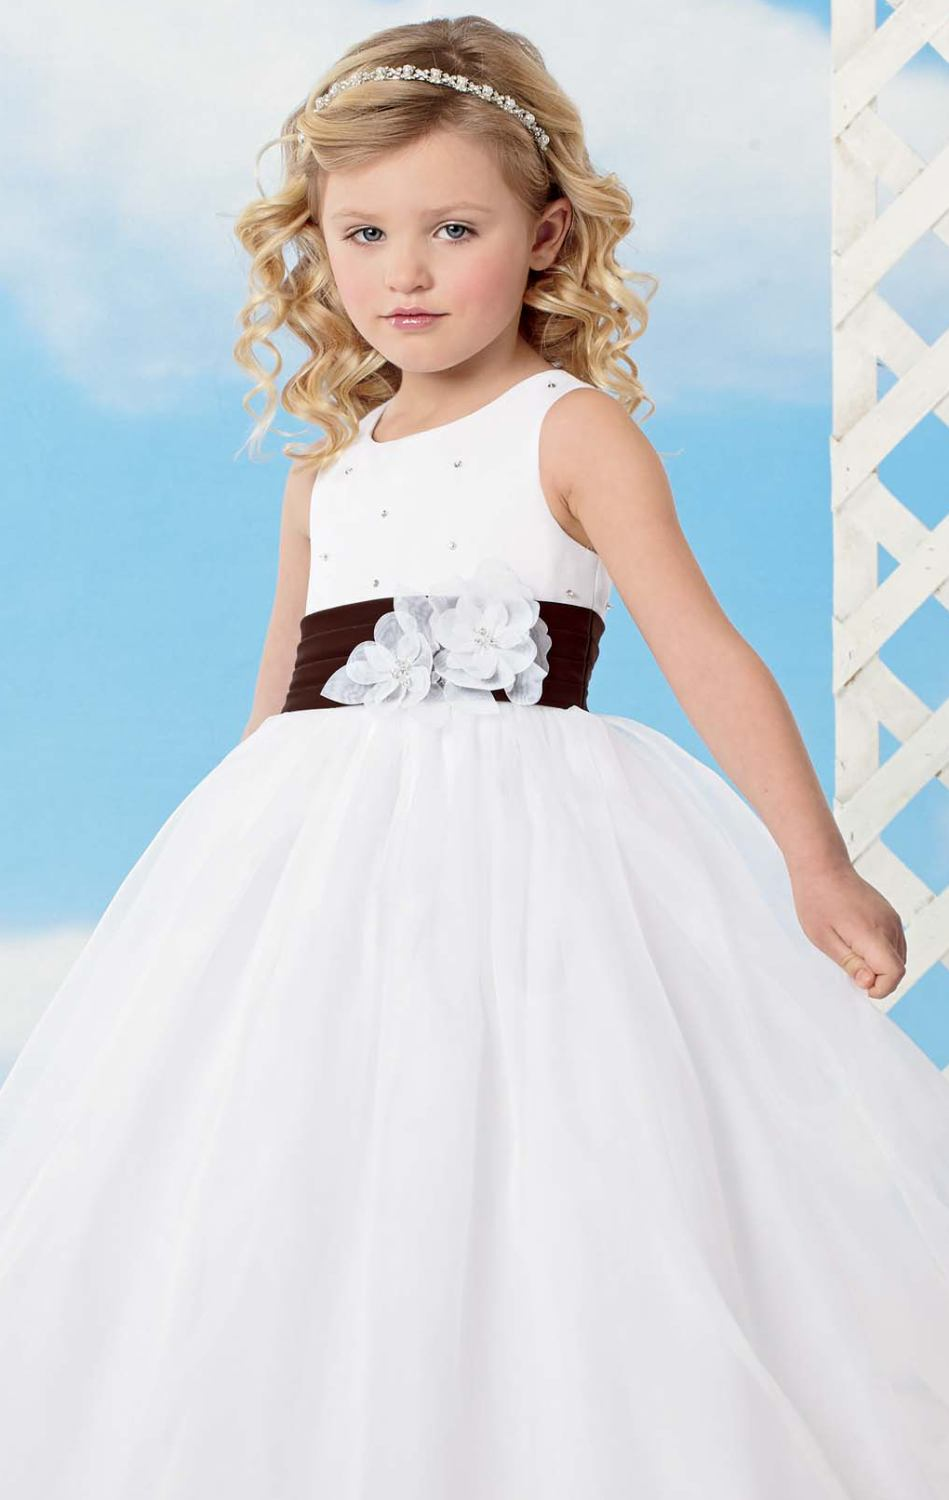 Pretty A Line Flowers Girl Dresses Black Sash White Hand Made